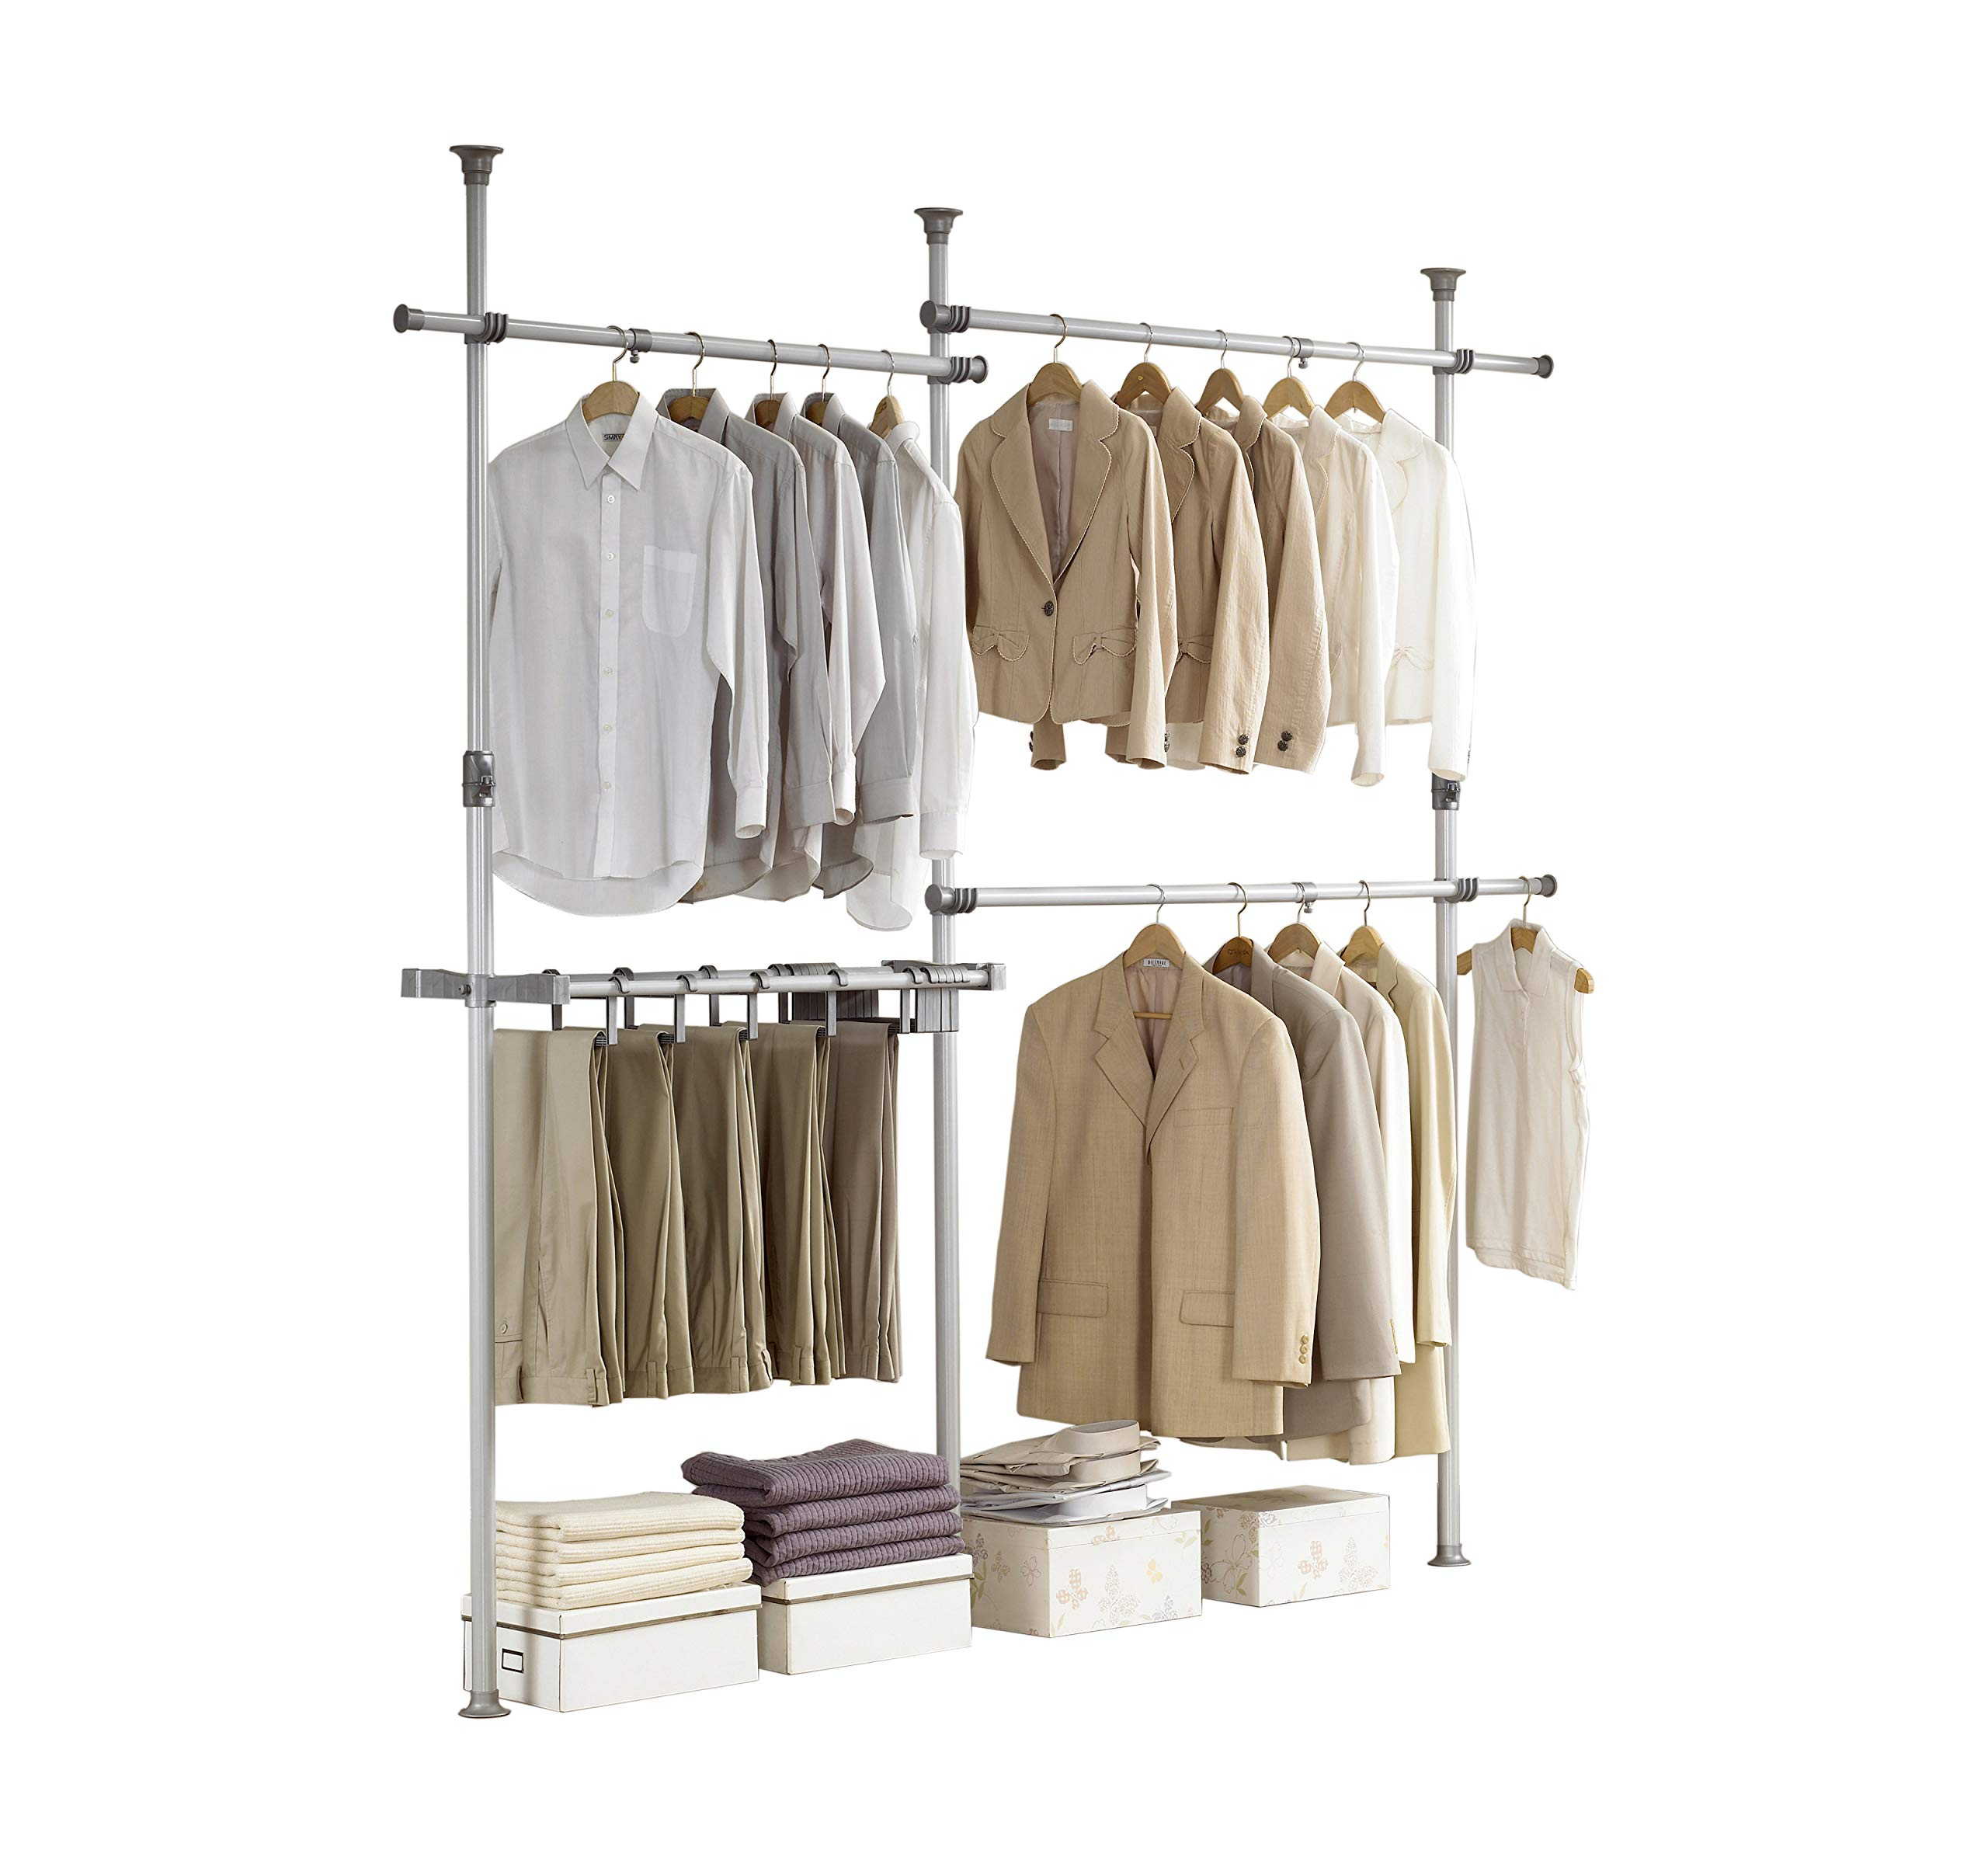 PRINCE HANGER, Double 2tier Pants Hanger, Silver, Steel, 38mm Heavy Duty, Closet Organizer, Clothing Rack, PHUS-0031 by PRINCE HANGER